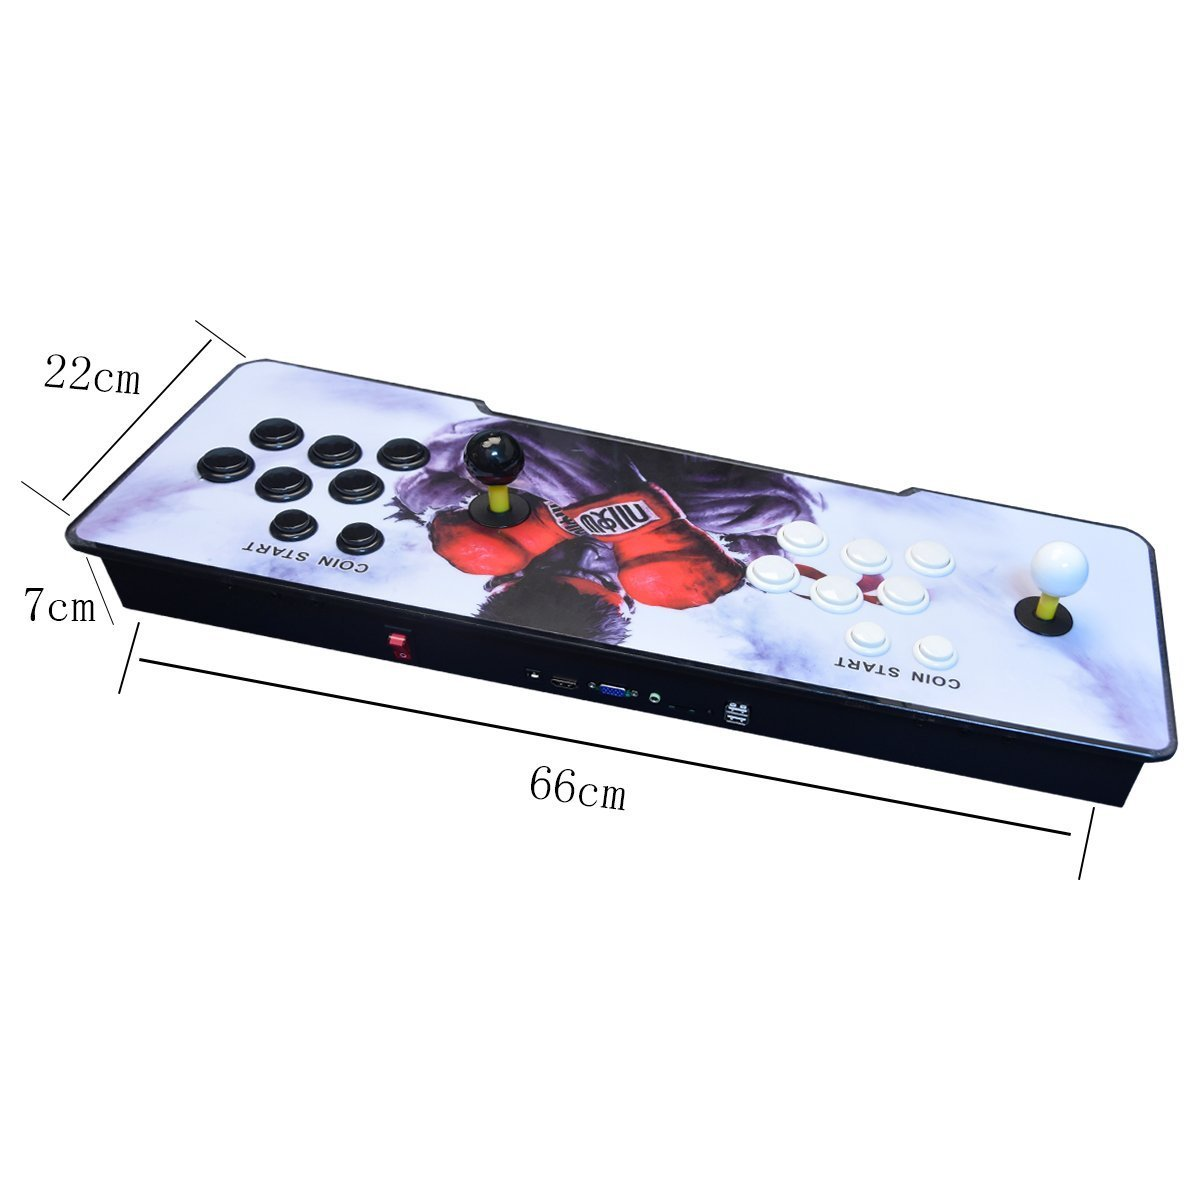 【2400 Games in 1】 Arcade Game Console Ultra Slim Metal Double Stick 2400 Classic Arcade Game Machine 2 Players Pandoras Box 6S 1280X720 Full HD Video Game Console for Computer & Projector & TV by TanDer (Image #2)